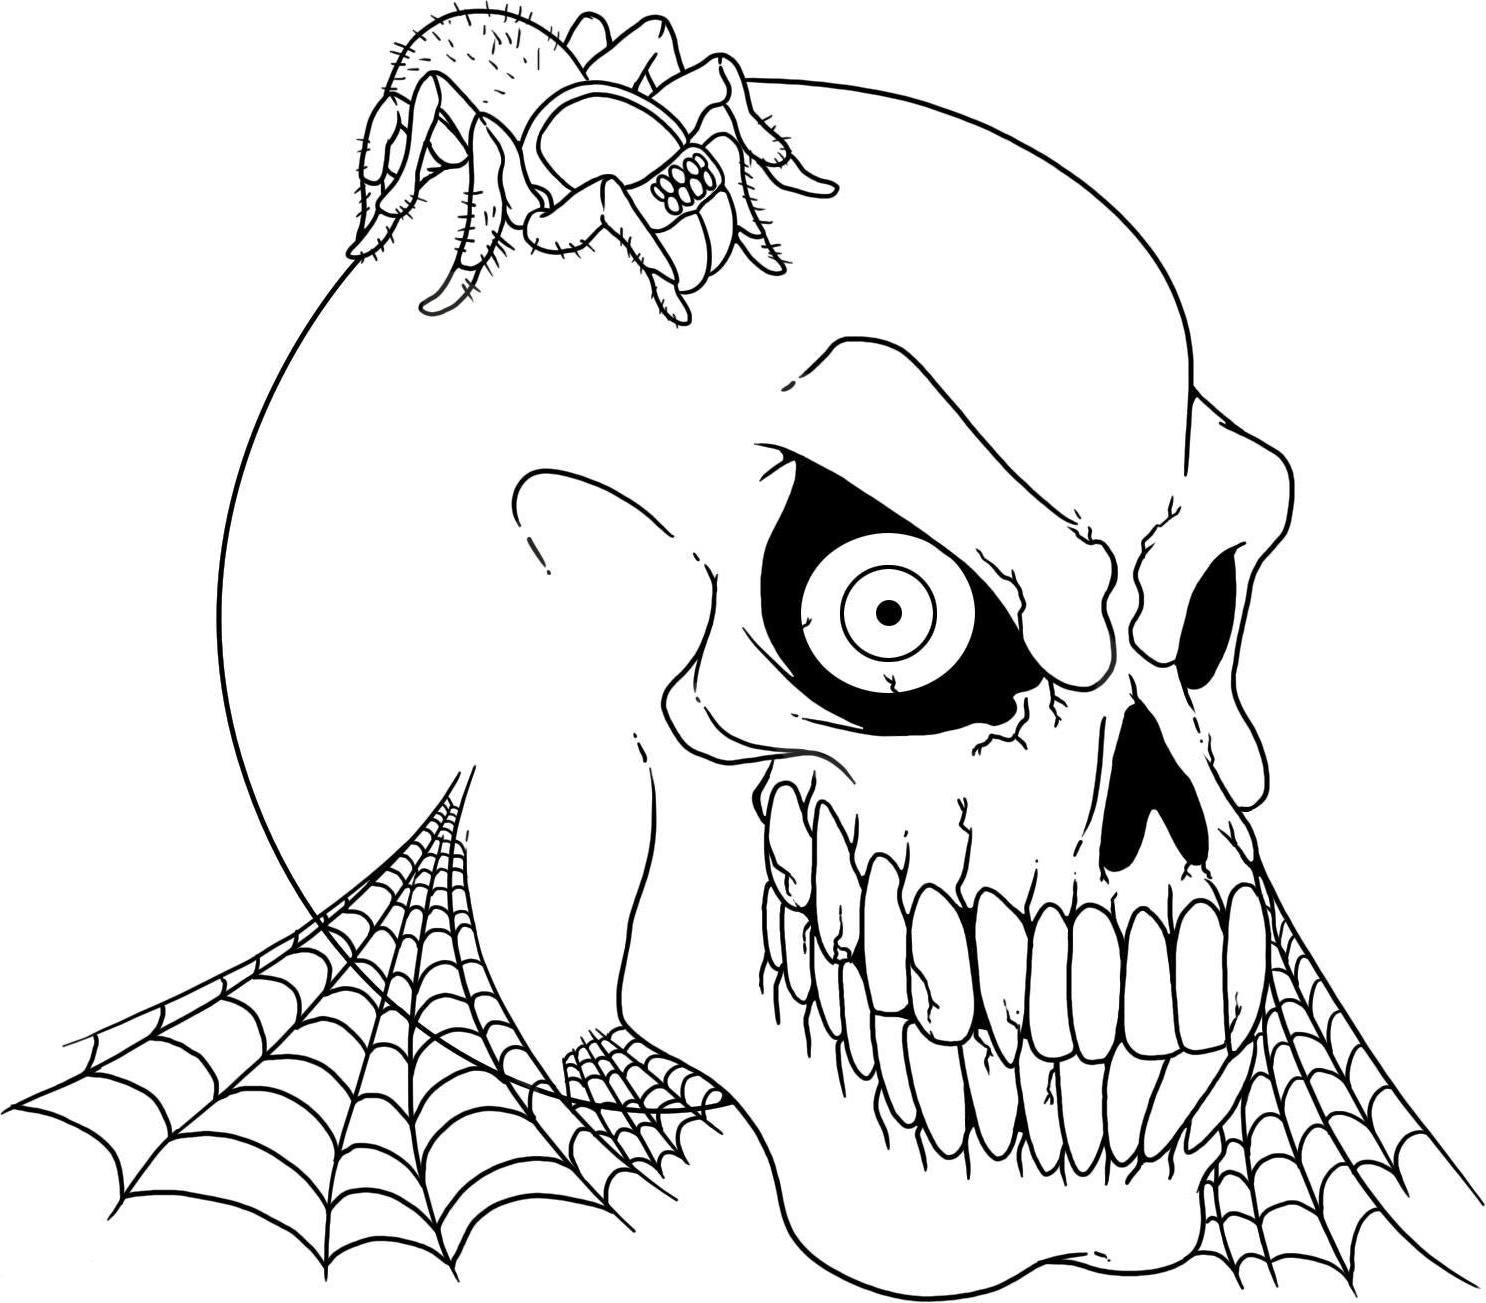 1486x1303 Pictures Scary Halloween Drawings For Kids,